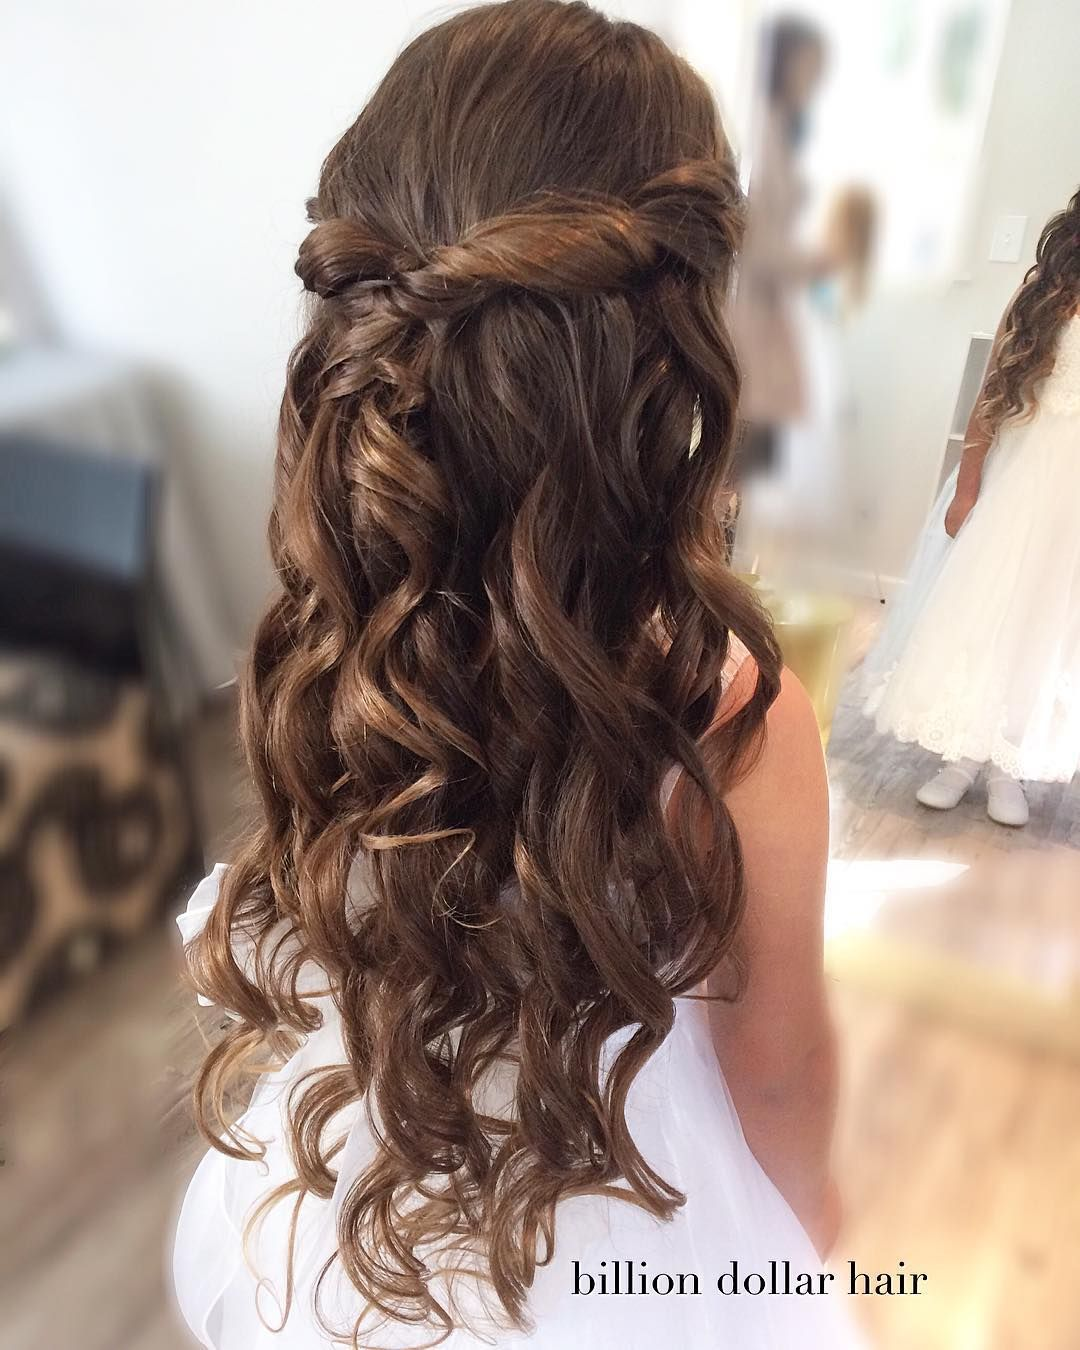 Billion Dollar Hair On Instagram Half Up With Curls And Soft Twists For Sweet Gianna Who First Communion Hairstyles Communion Hairstyles Soft Curl Hairstyles